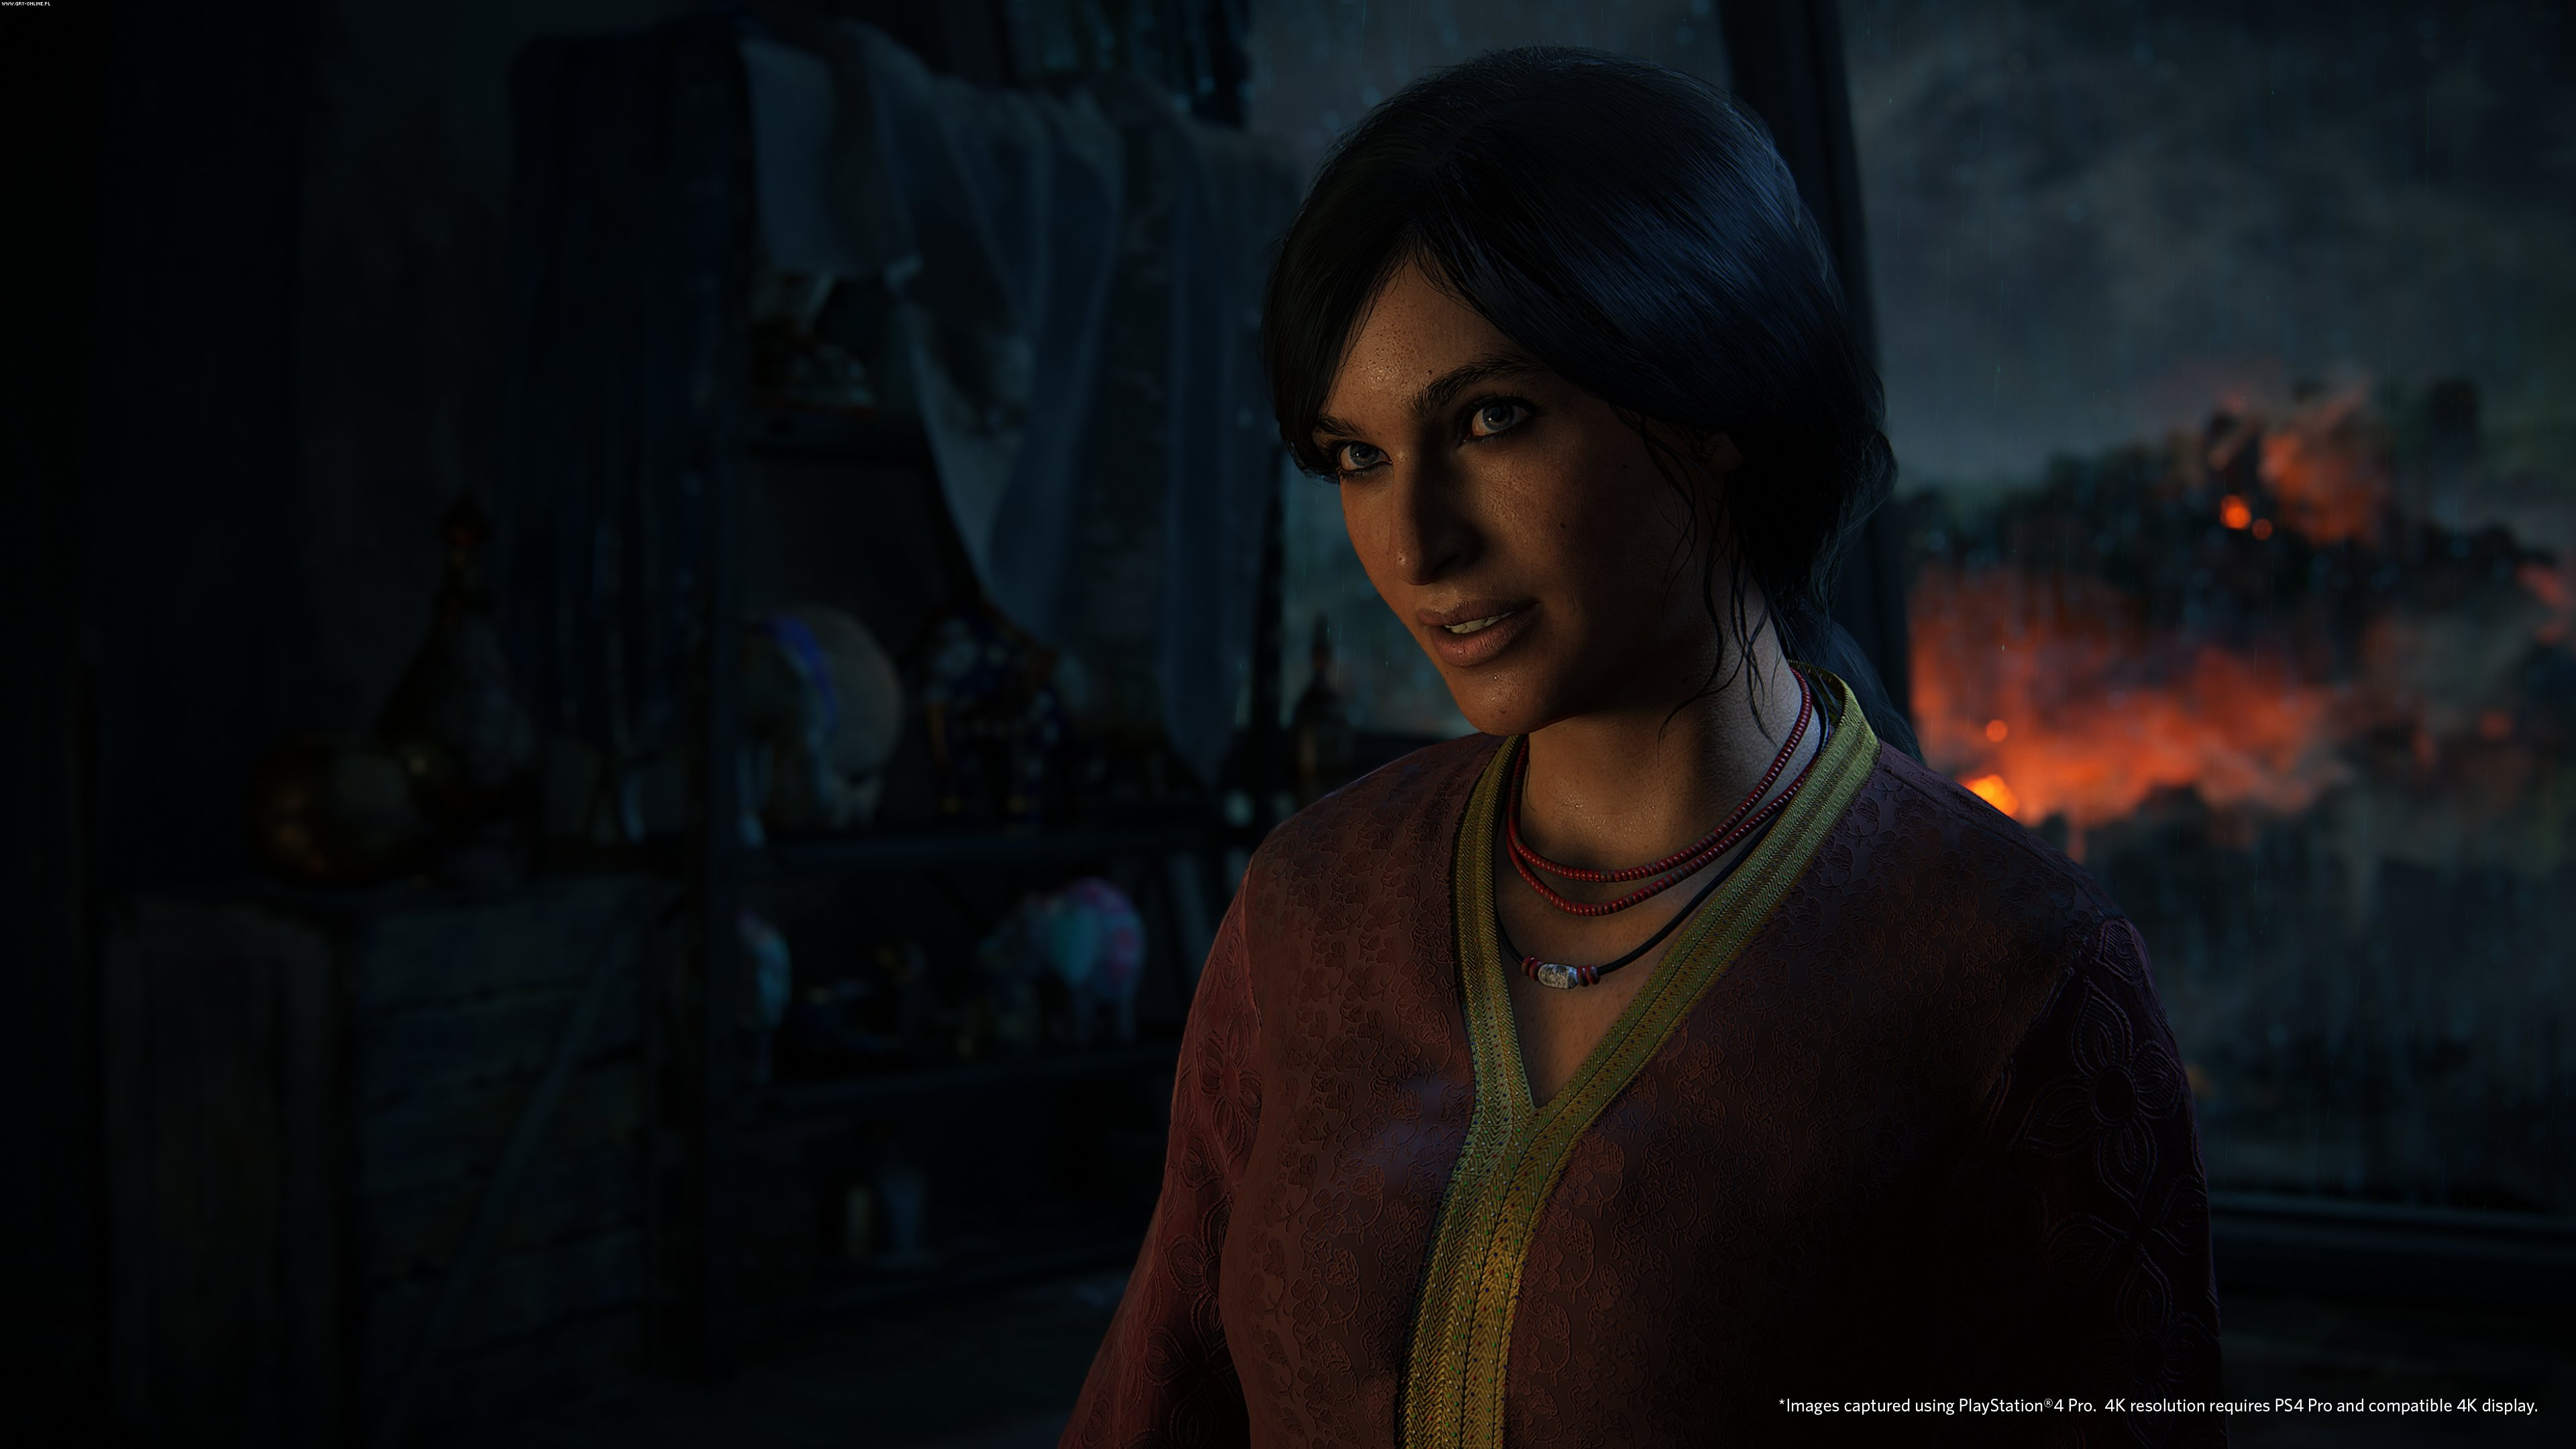 Uncharted: The Lost Legacy PS4 Games Image 124/141, Naughty Dog, Sony Interactive Entertainment